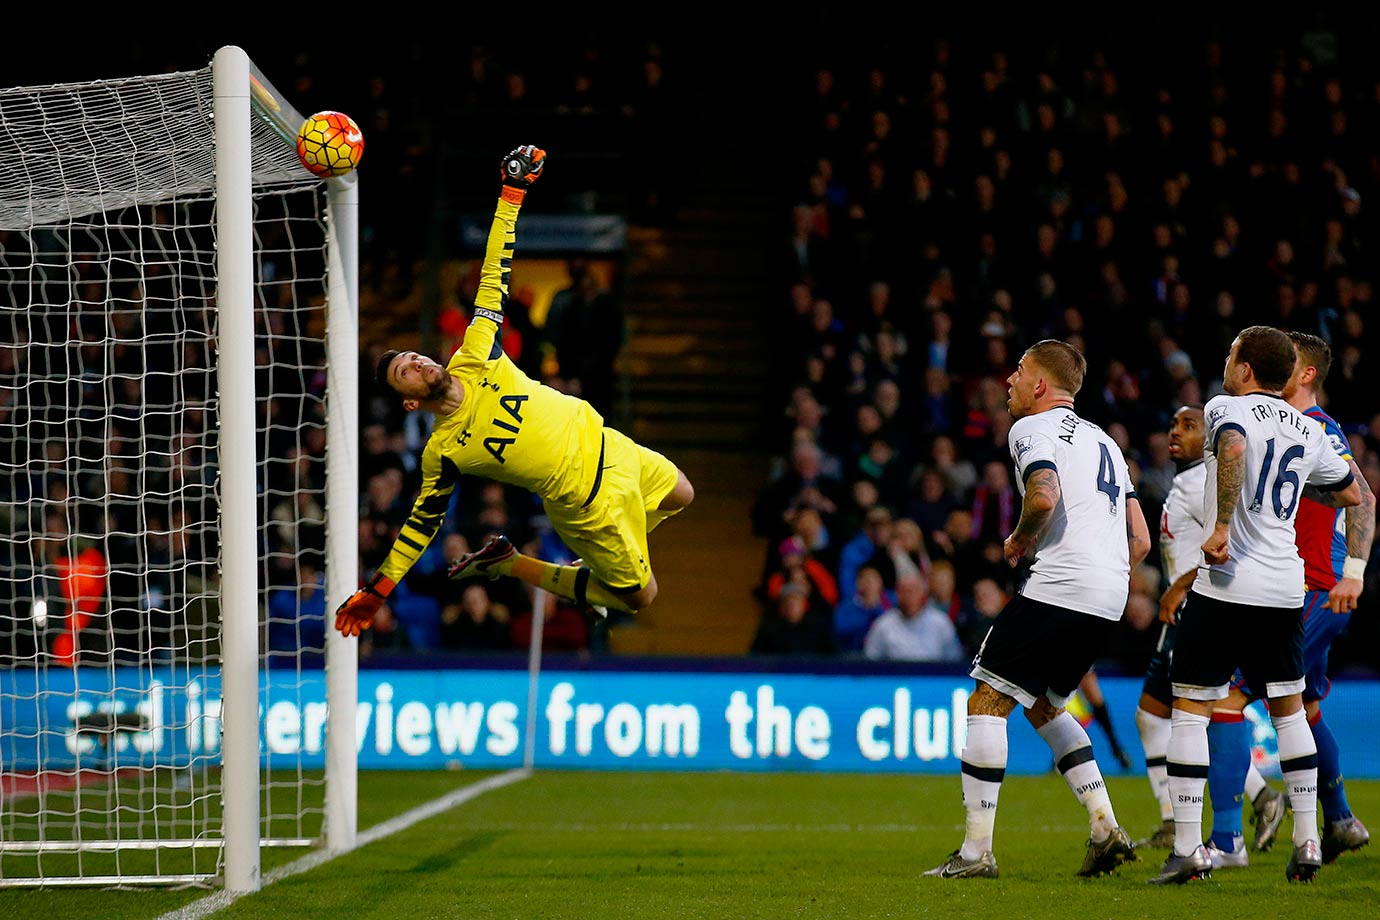 Hugo Lloris of Tottenham Hotspur (or really the crossbar) makes a save during the Barclays Premier League match against Crystal Palace at Selhurst Park in London.